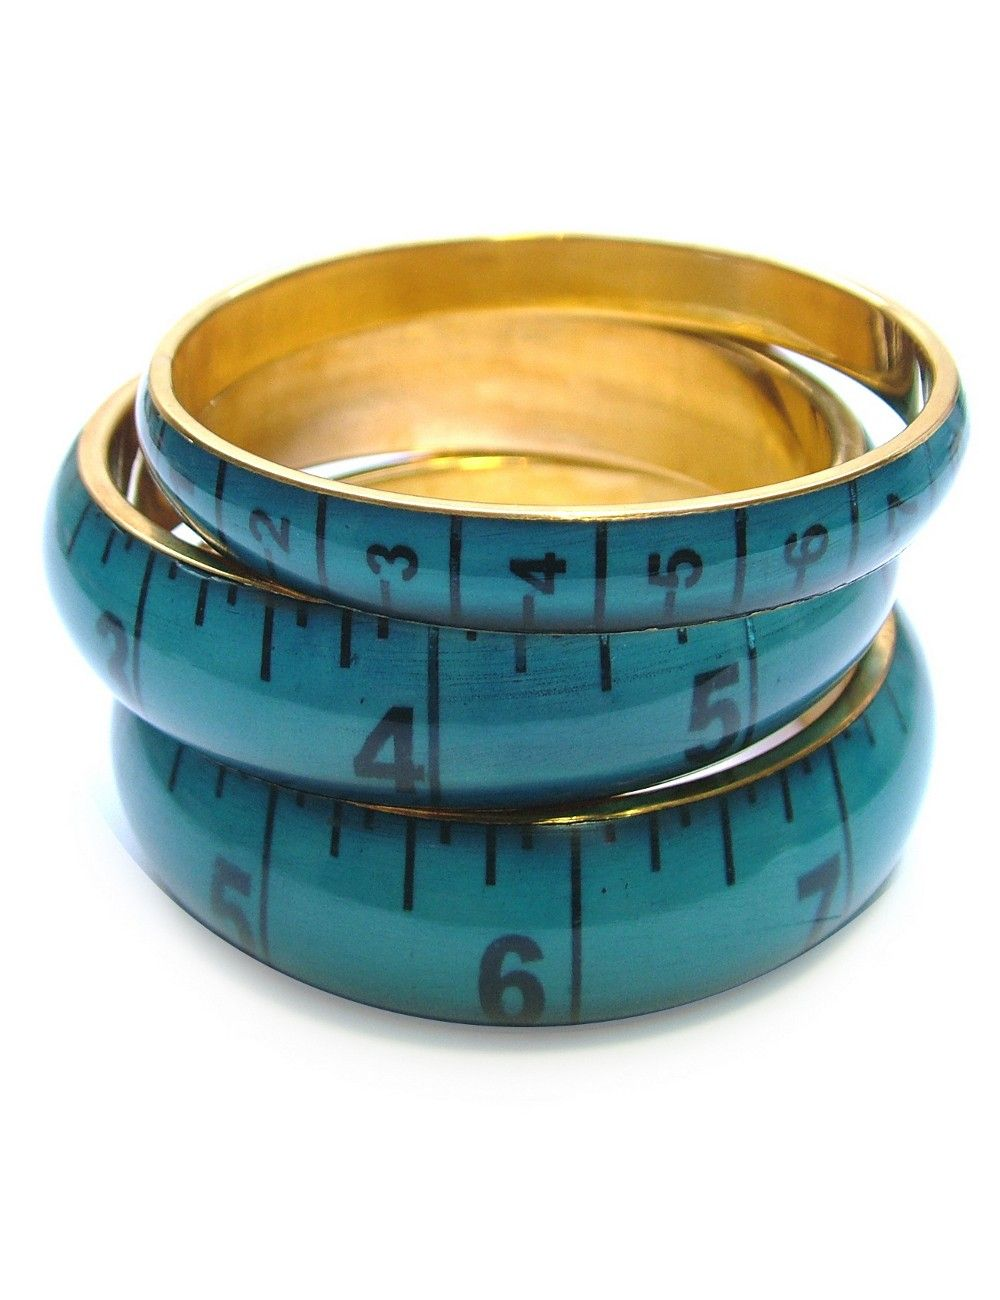 A set of fabulous and funky vintage style 'Tape Measure